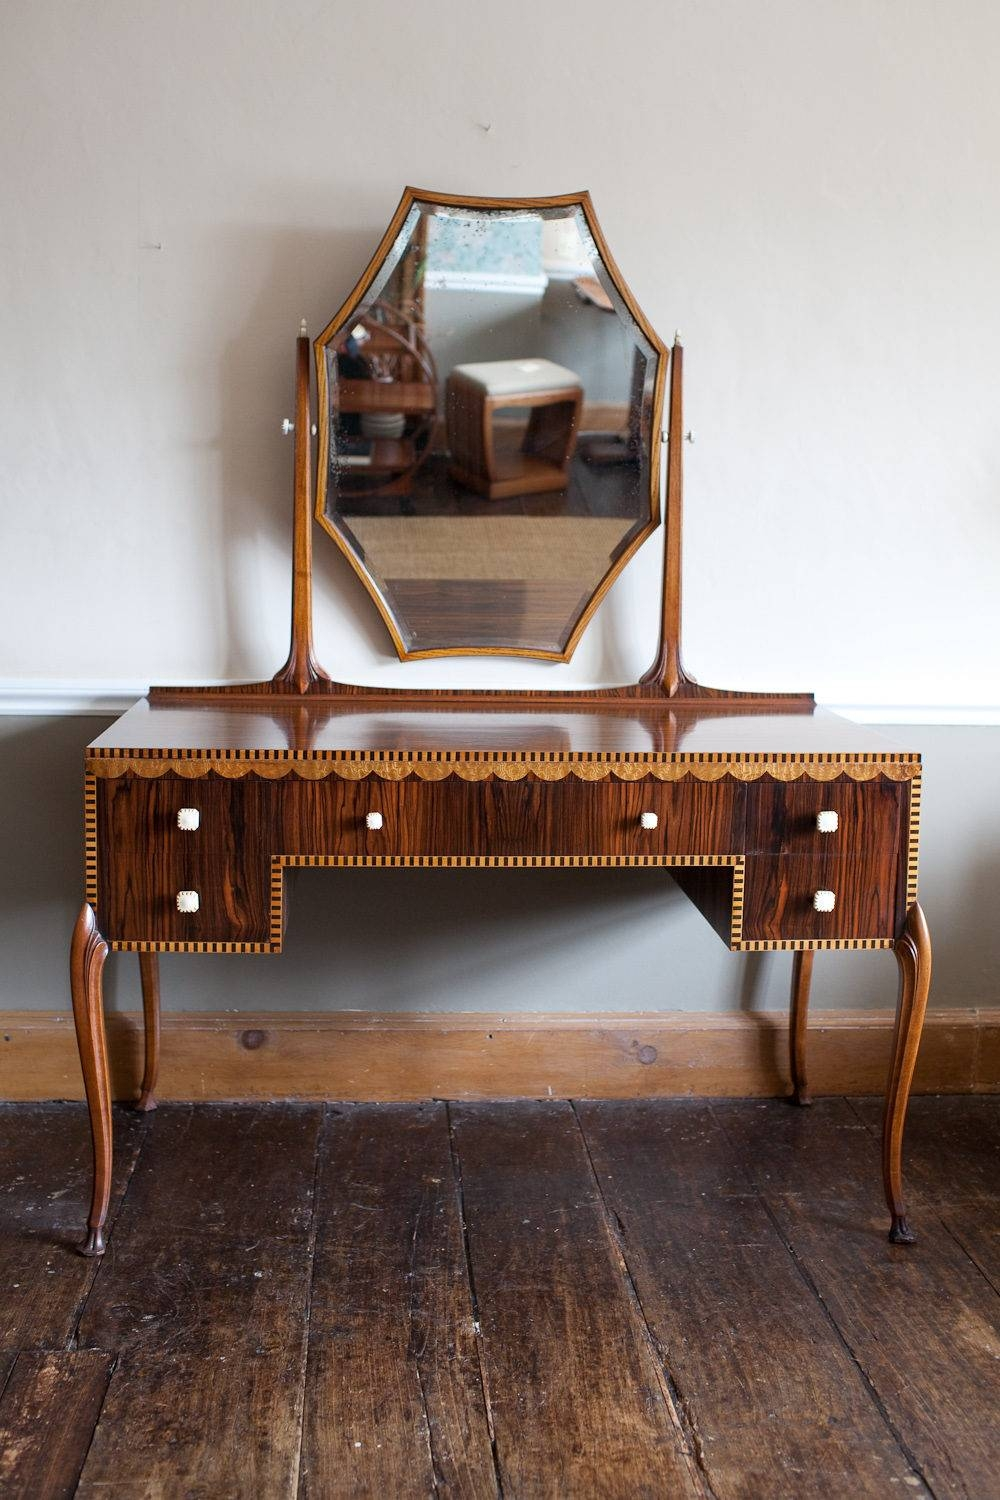 Art Deco Dressing Table - Antiques Atlas intended for Art Nouveau Dressing Table Mirrors (Image 4 of 15)